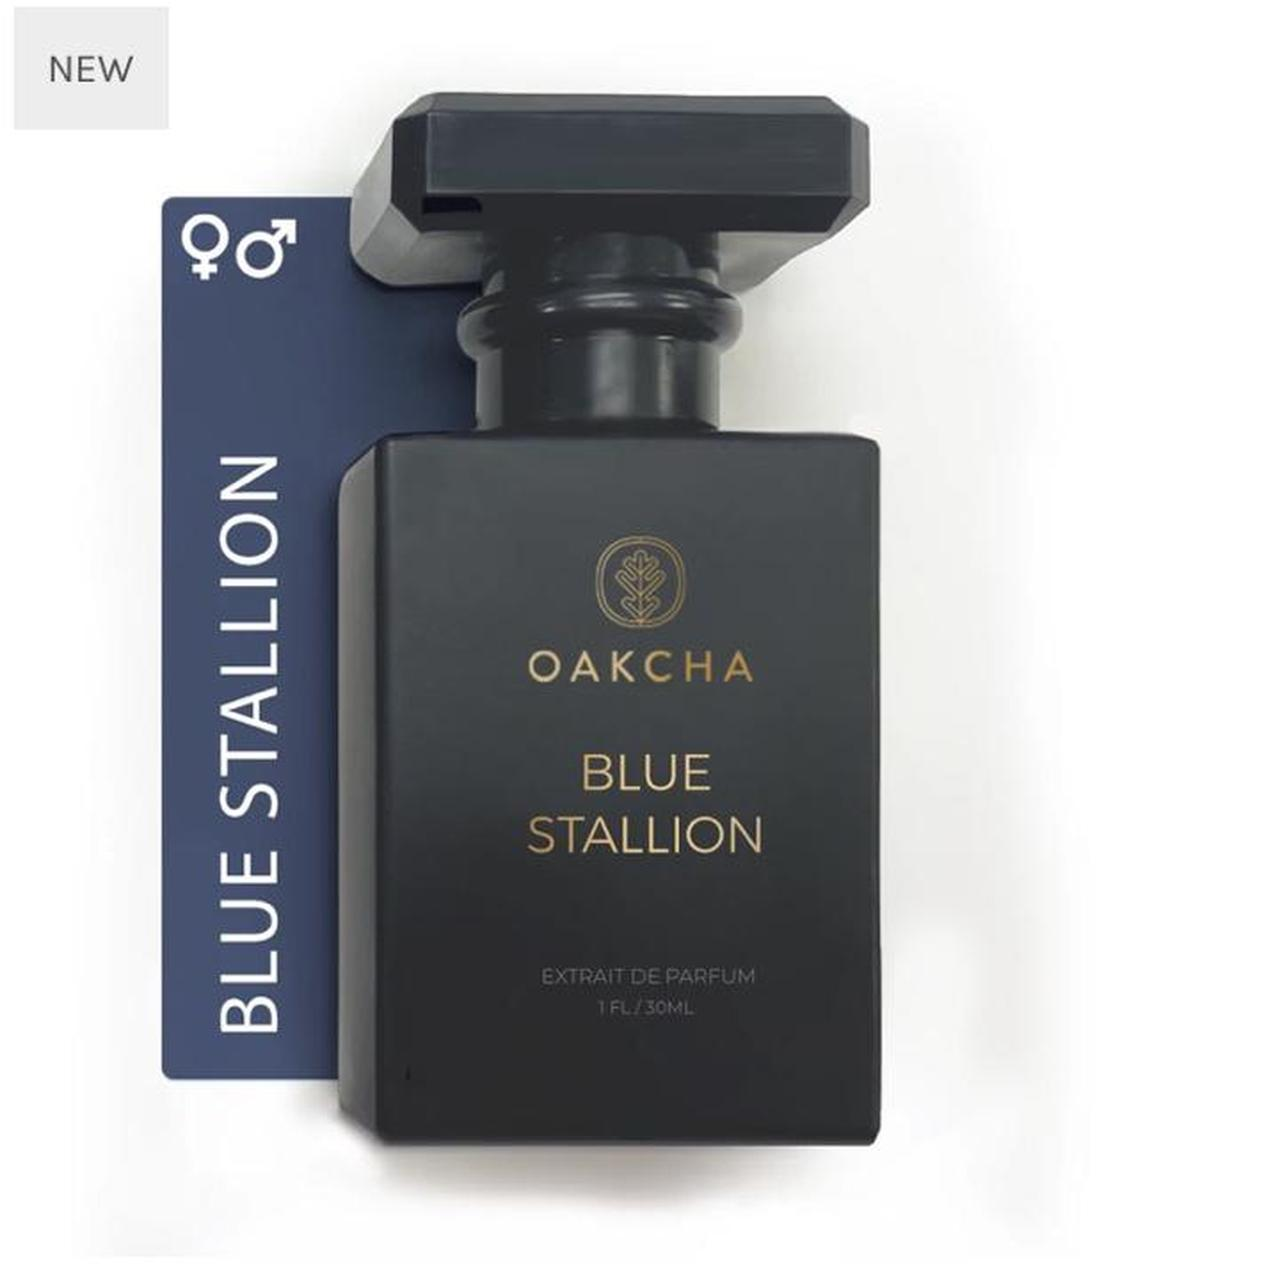 Product Image 1 - Blue Stallion, a sexy and